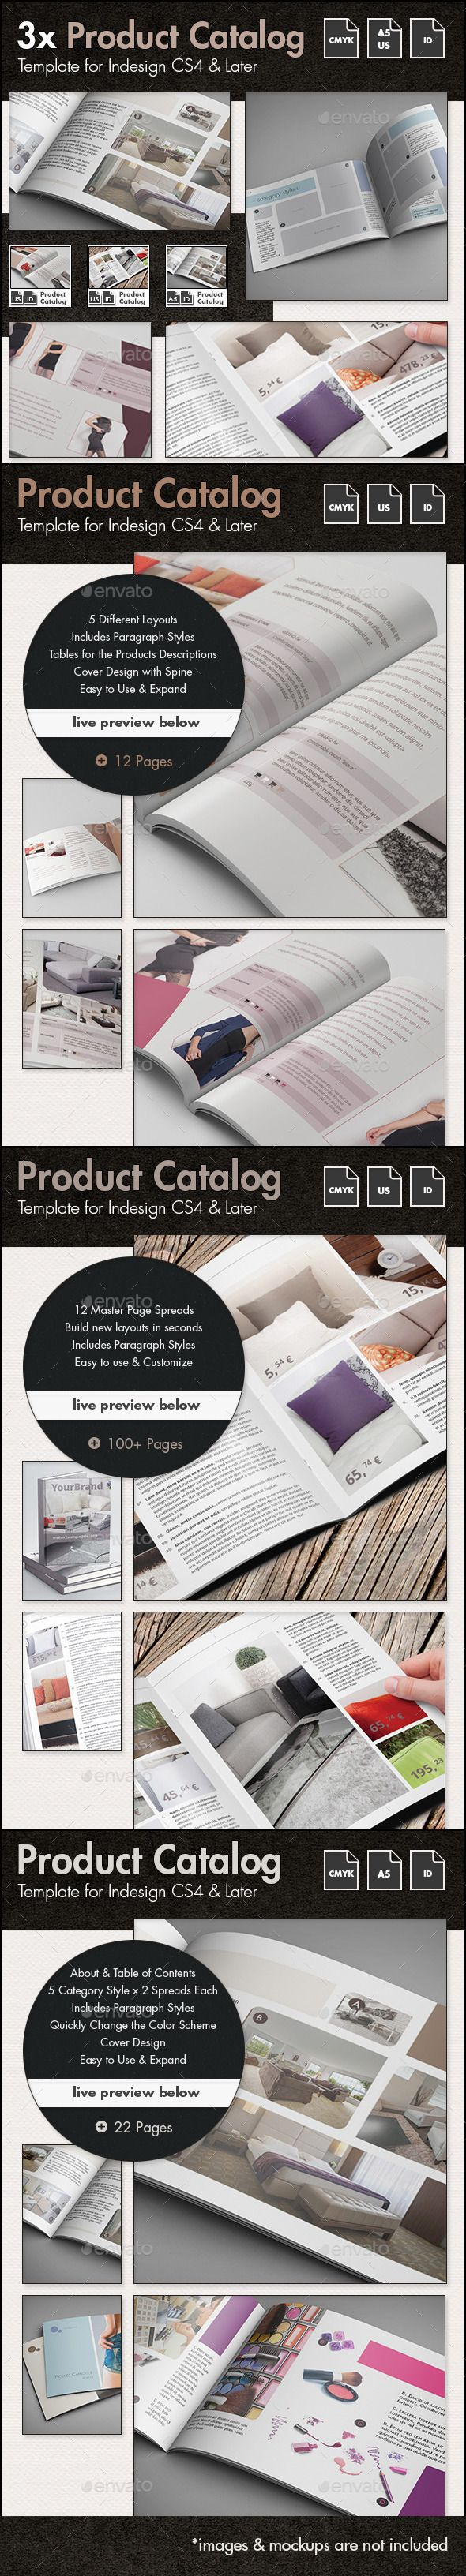 Product Catalog Template Bundle - US Letter and A5